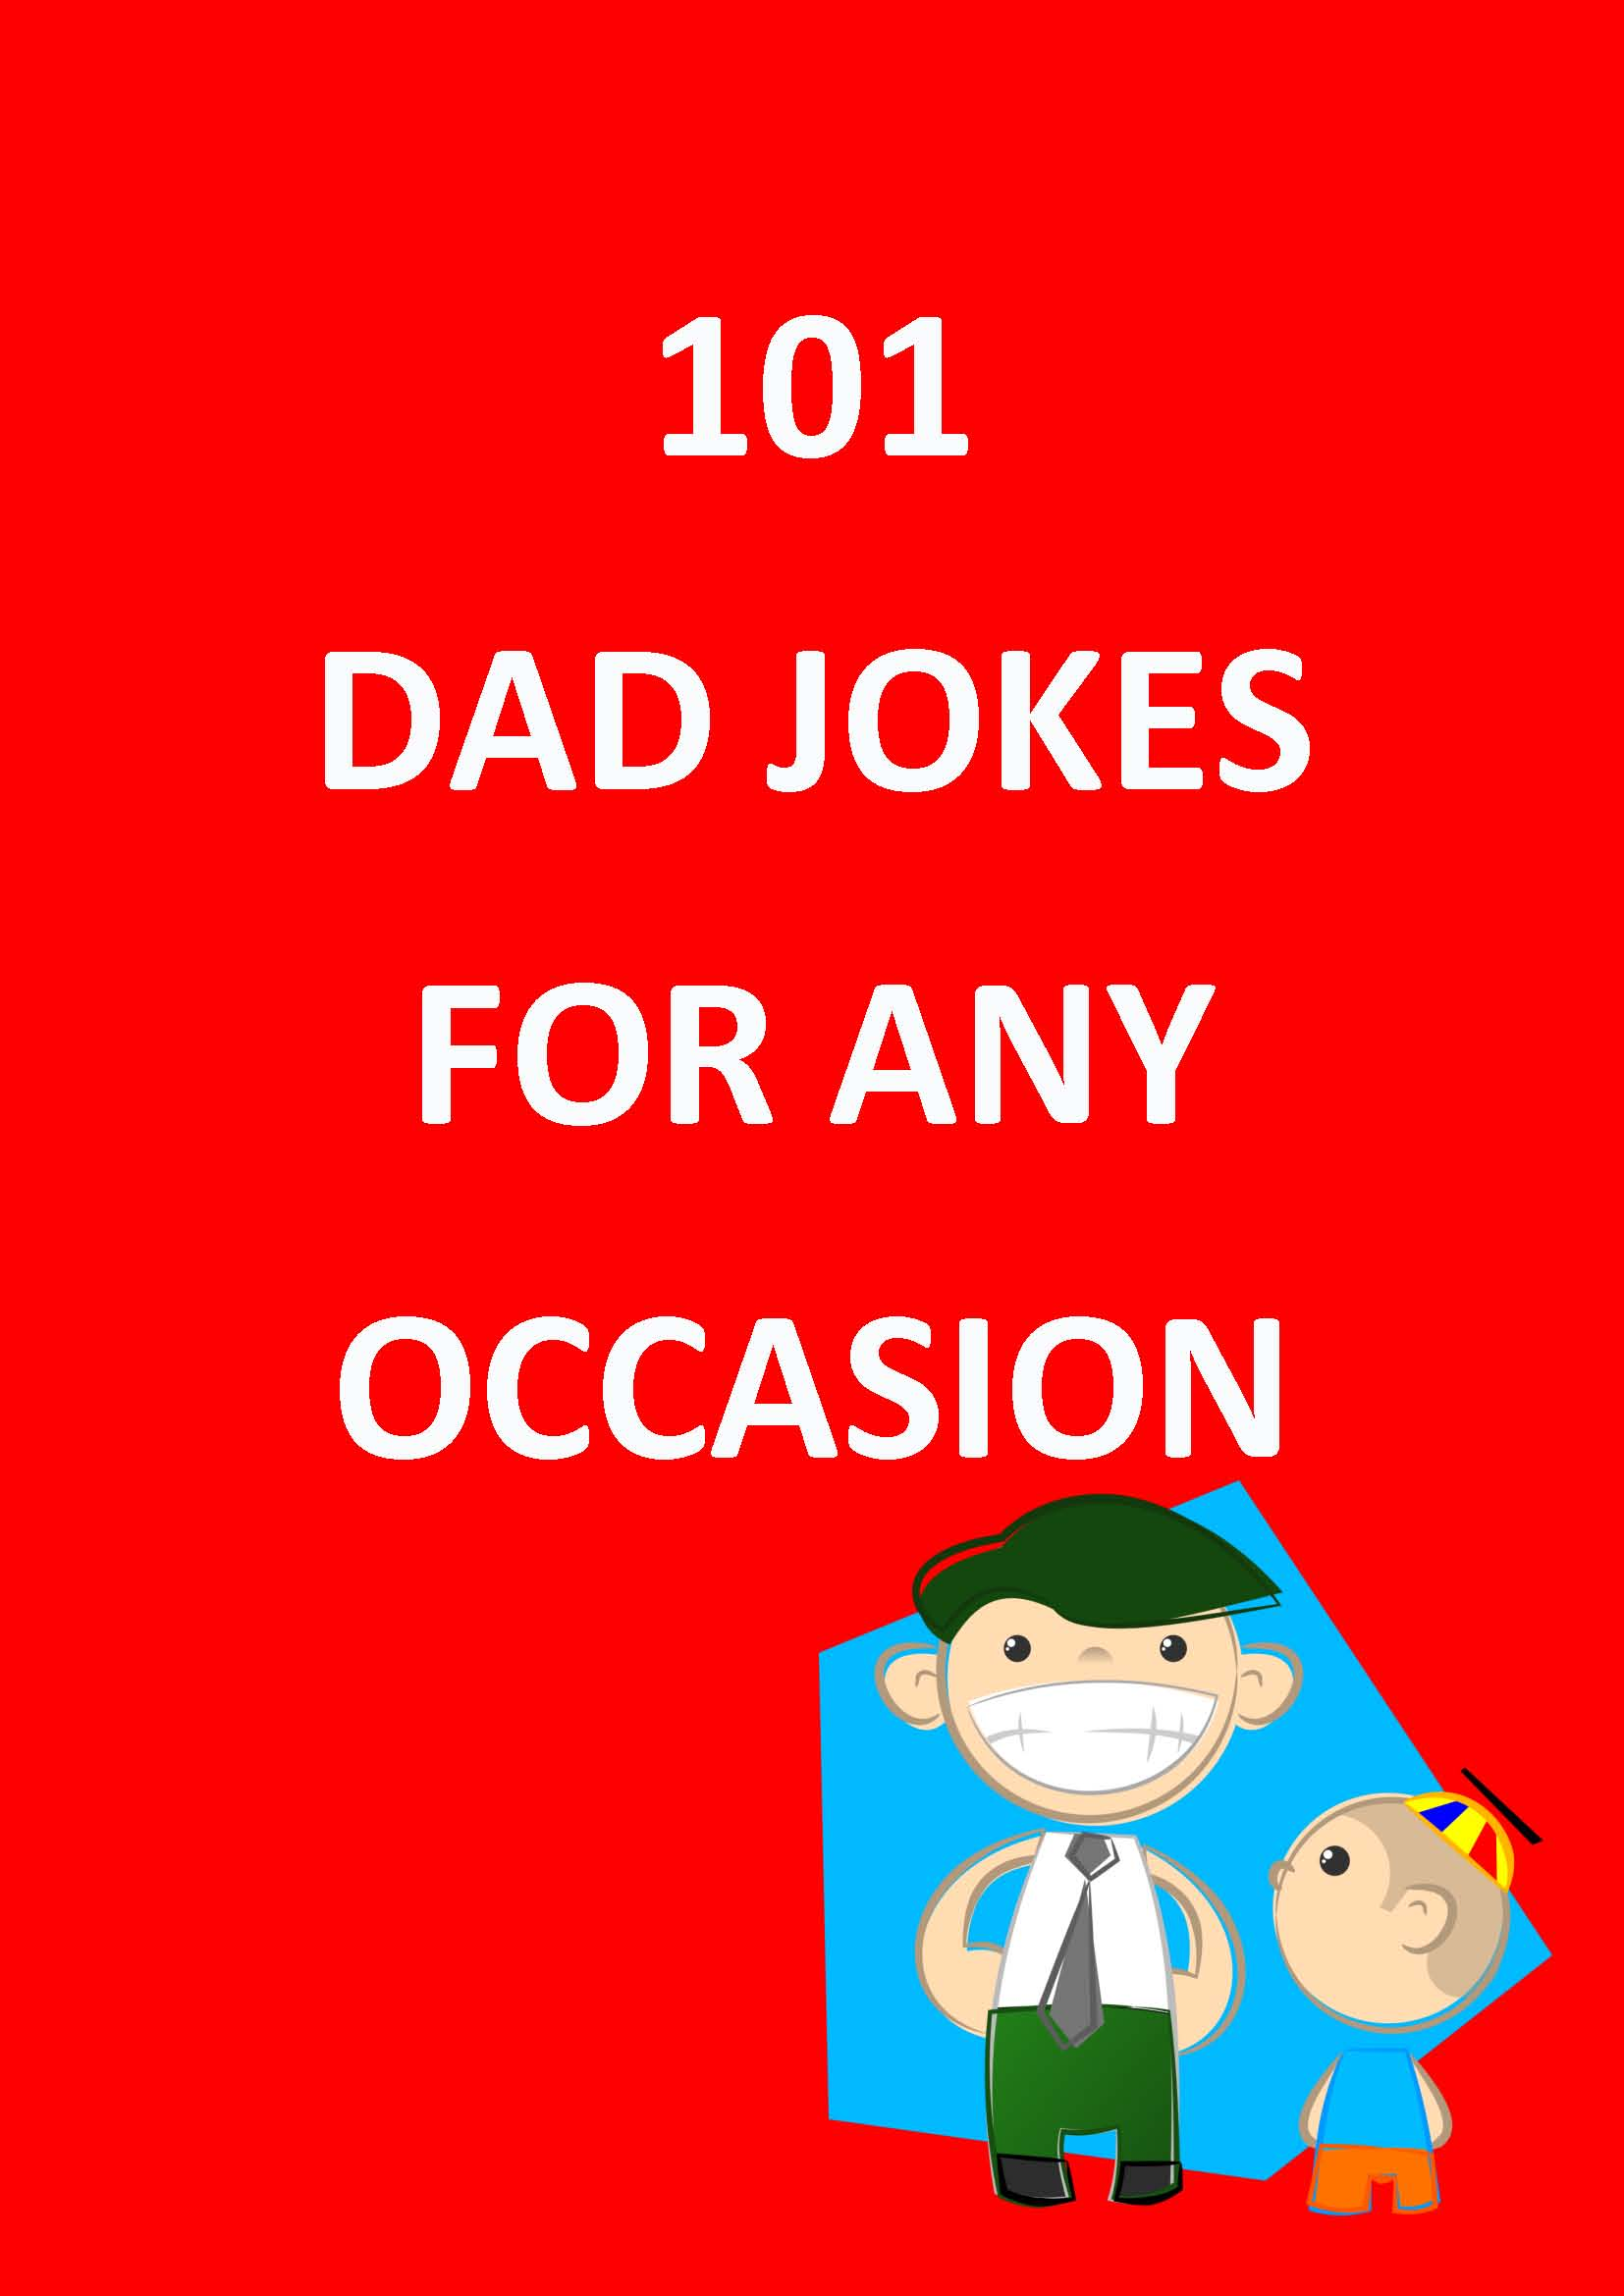 101 Dad Jokes for Any Occasion, an Ebook by Christopher Idzikowski